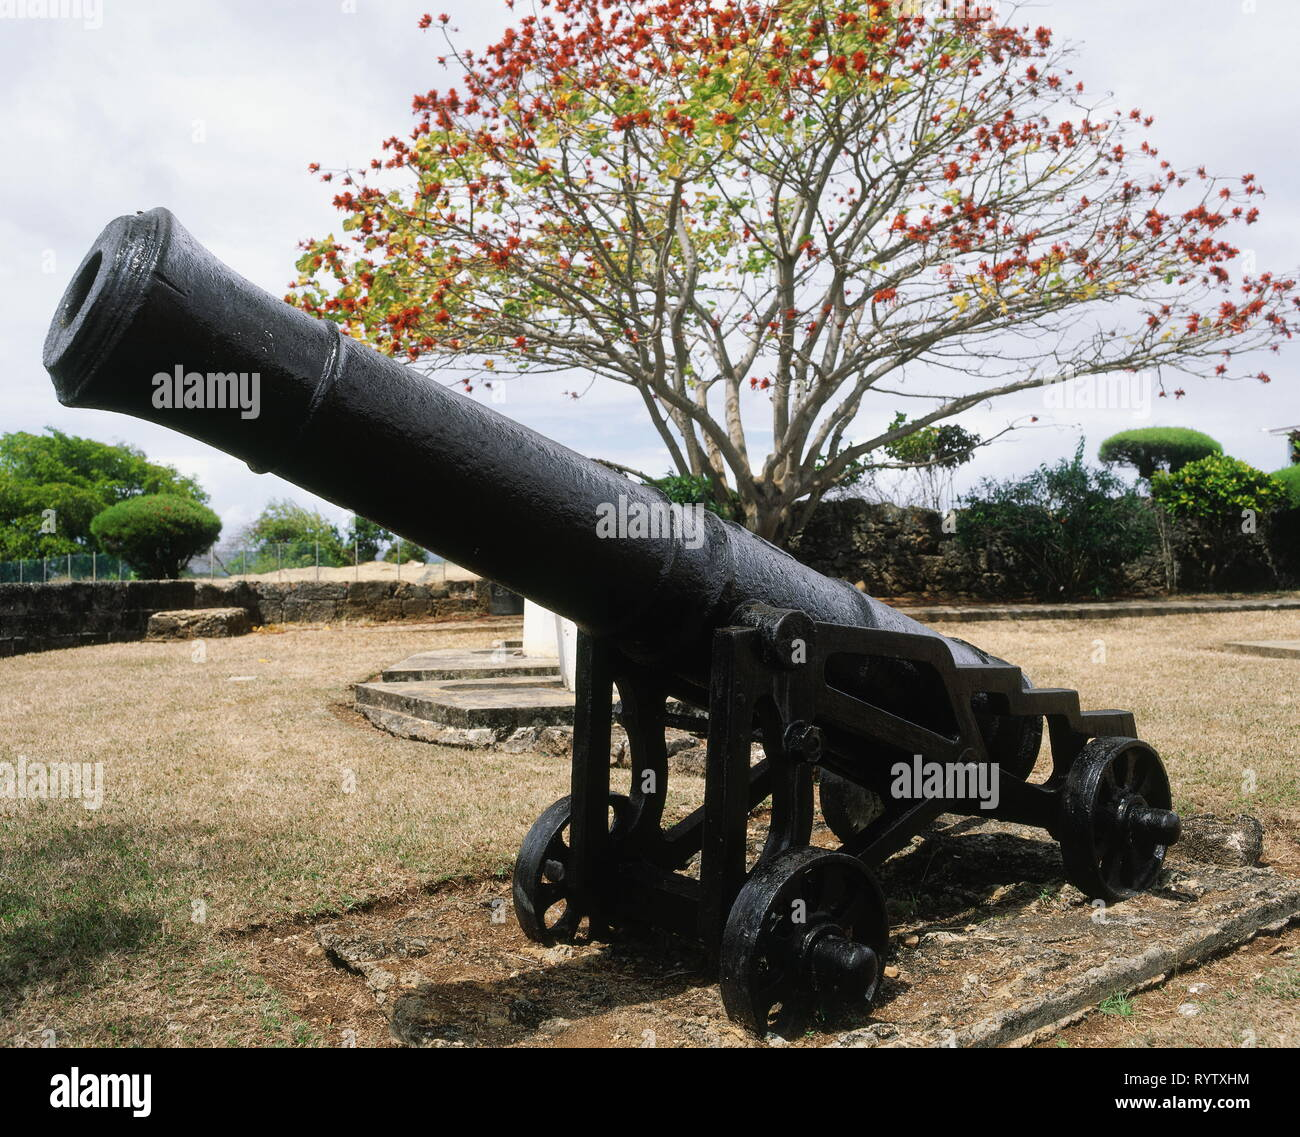 weapons, cannon on the Courland Point, Fort James from 1768, Tobago, Caribbean Isle, Additional-Rights-Clearance-Info-Not-Available - Stock Image